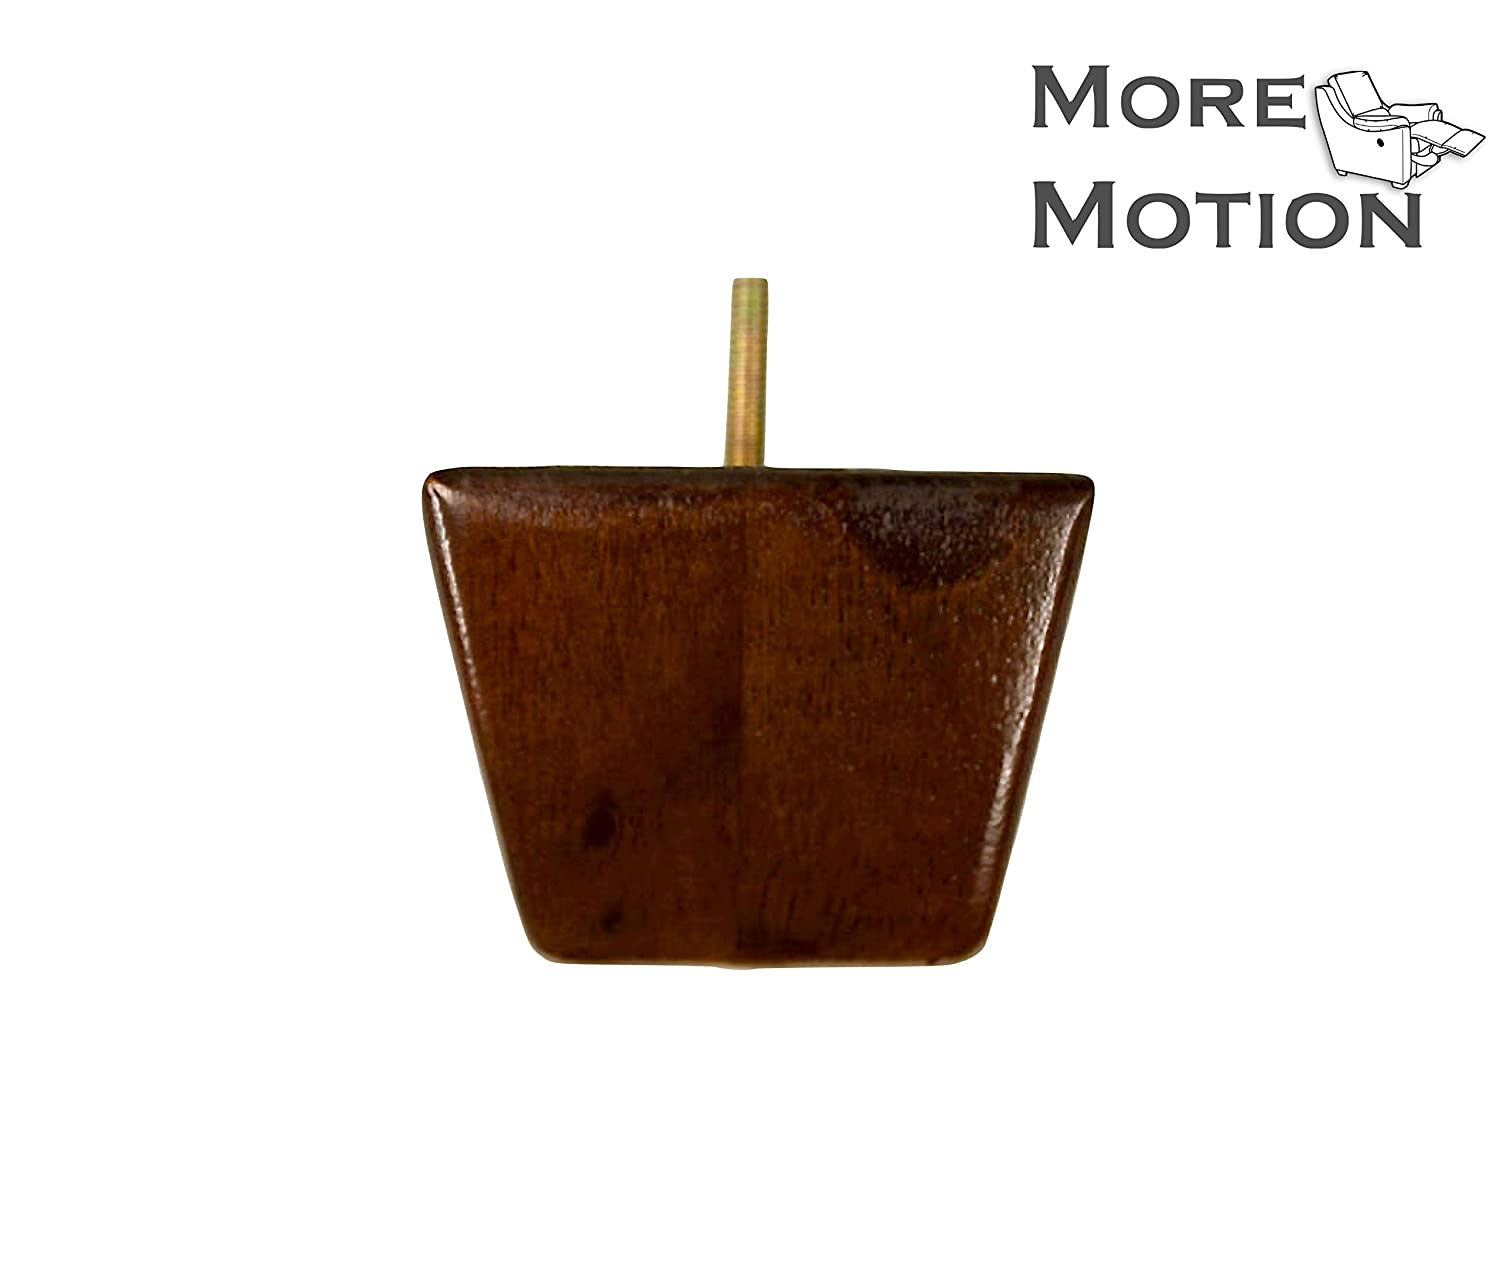 "MoreMotion 2.75"" Walnut Finish Square Tapered Wooden Legs, Set of 4"